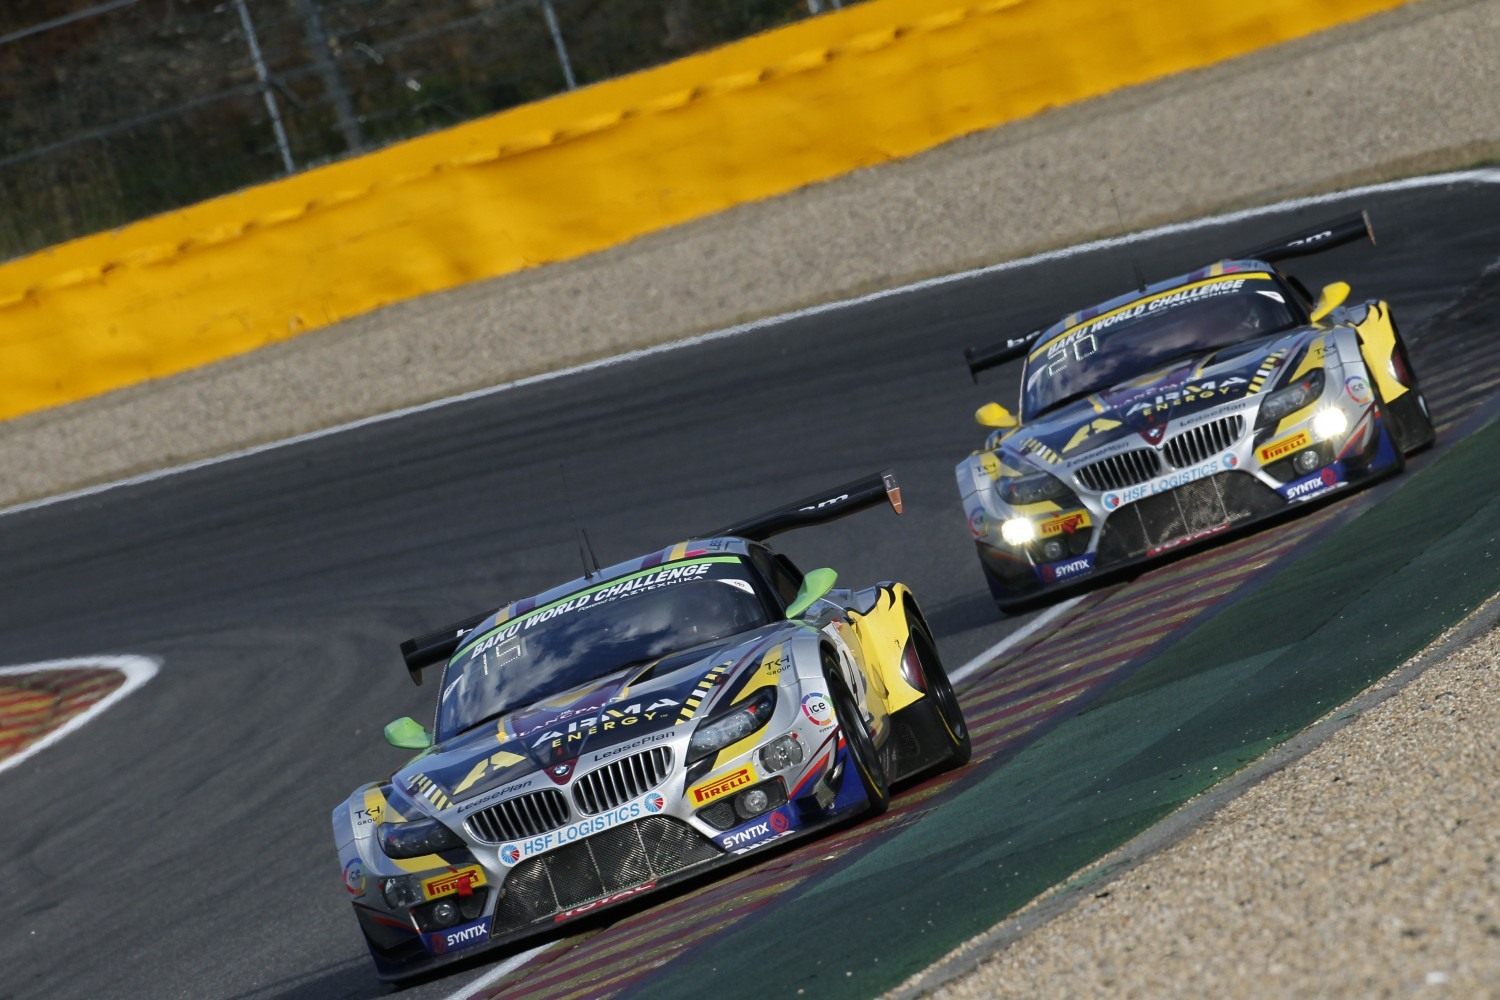 BMW Sports Trophy Team Marc VDS confirms entry for the Total 24 Hours of Spa